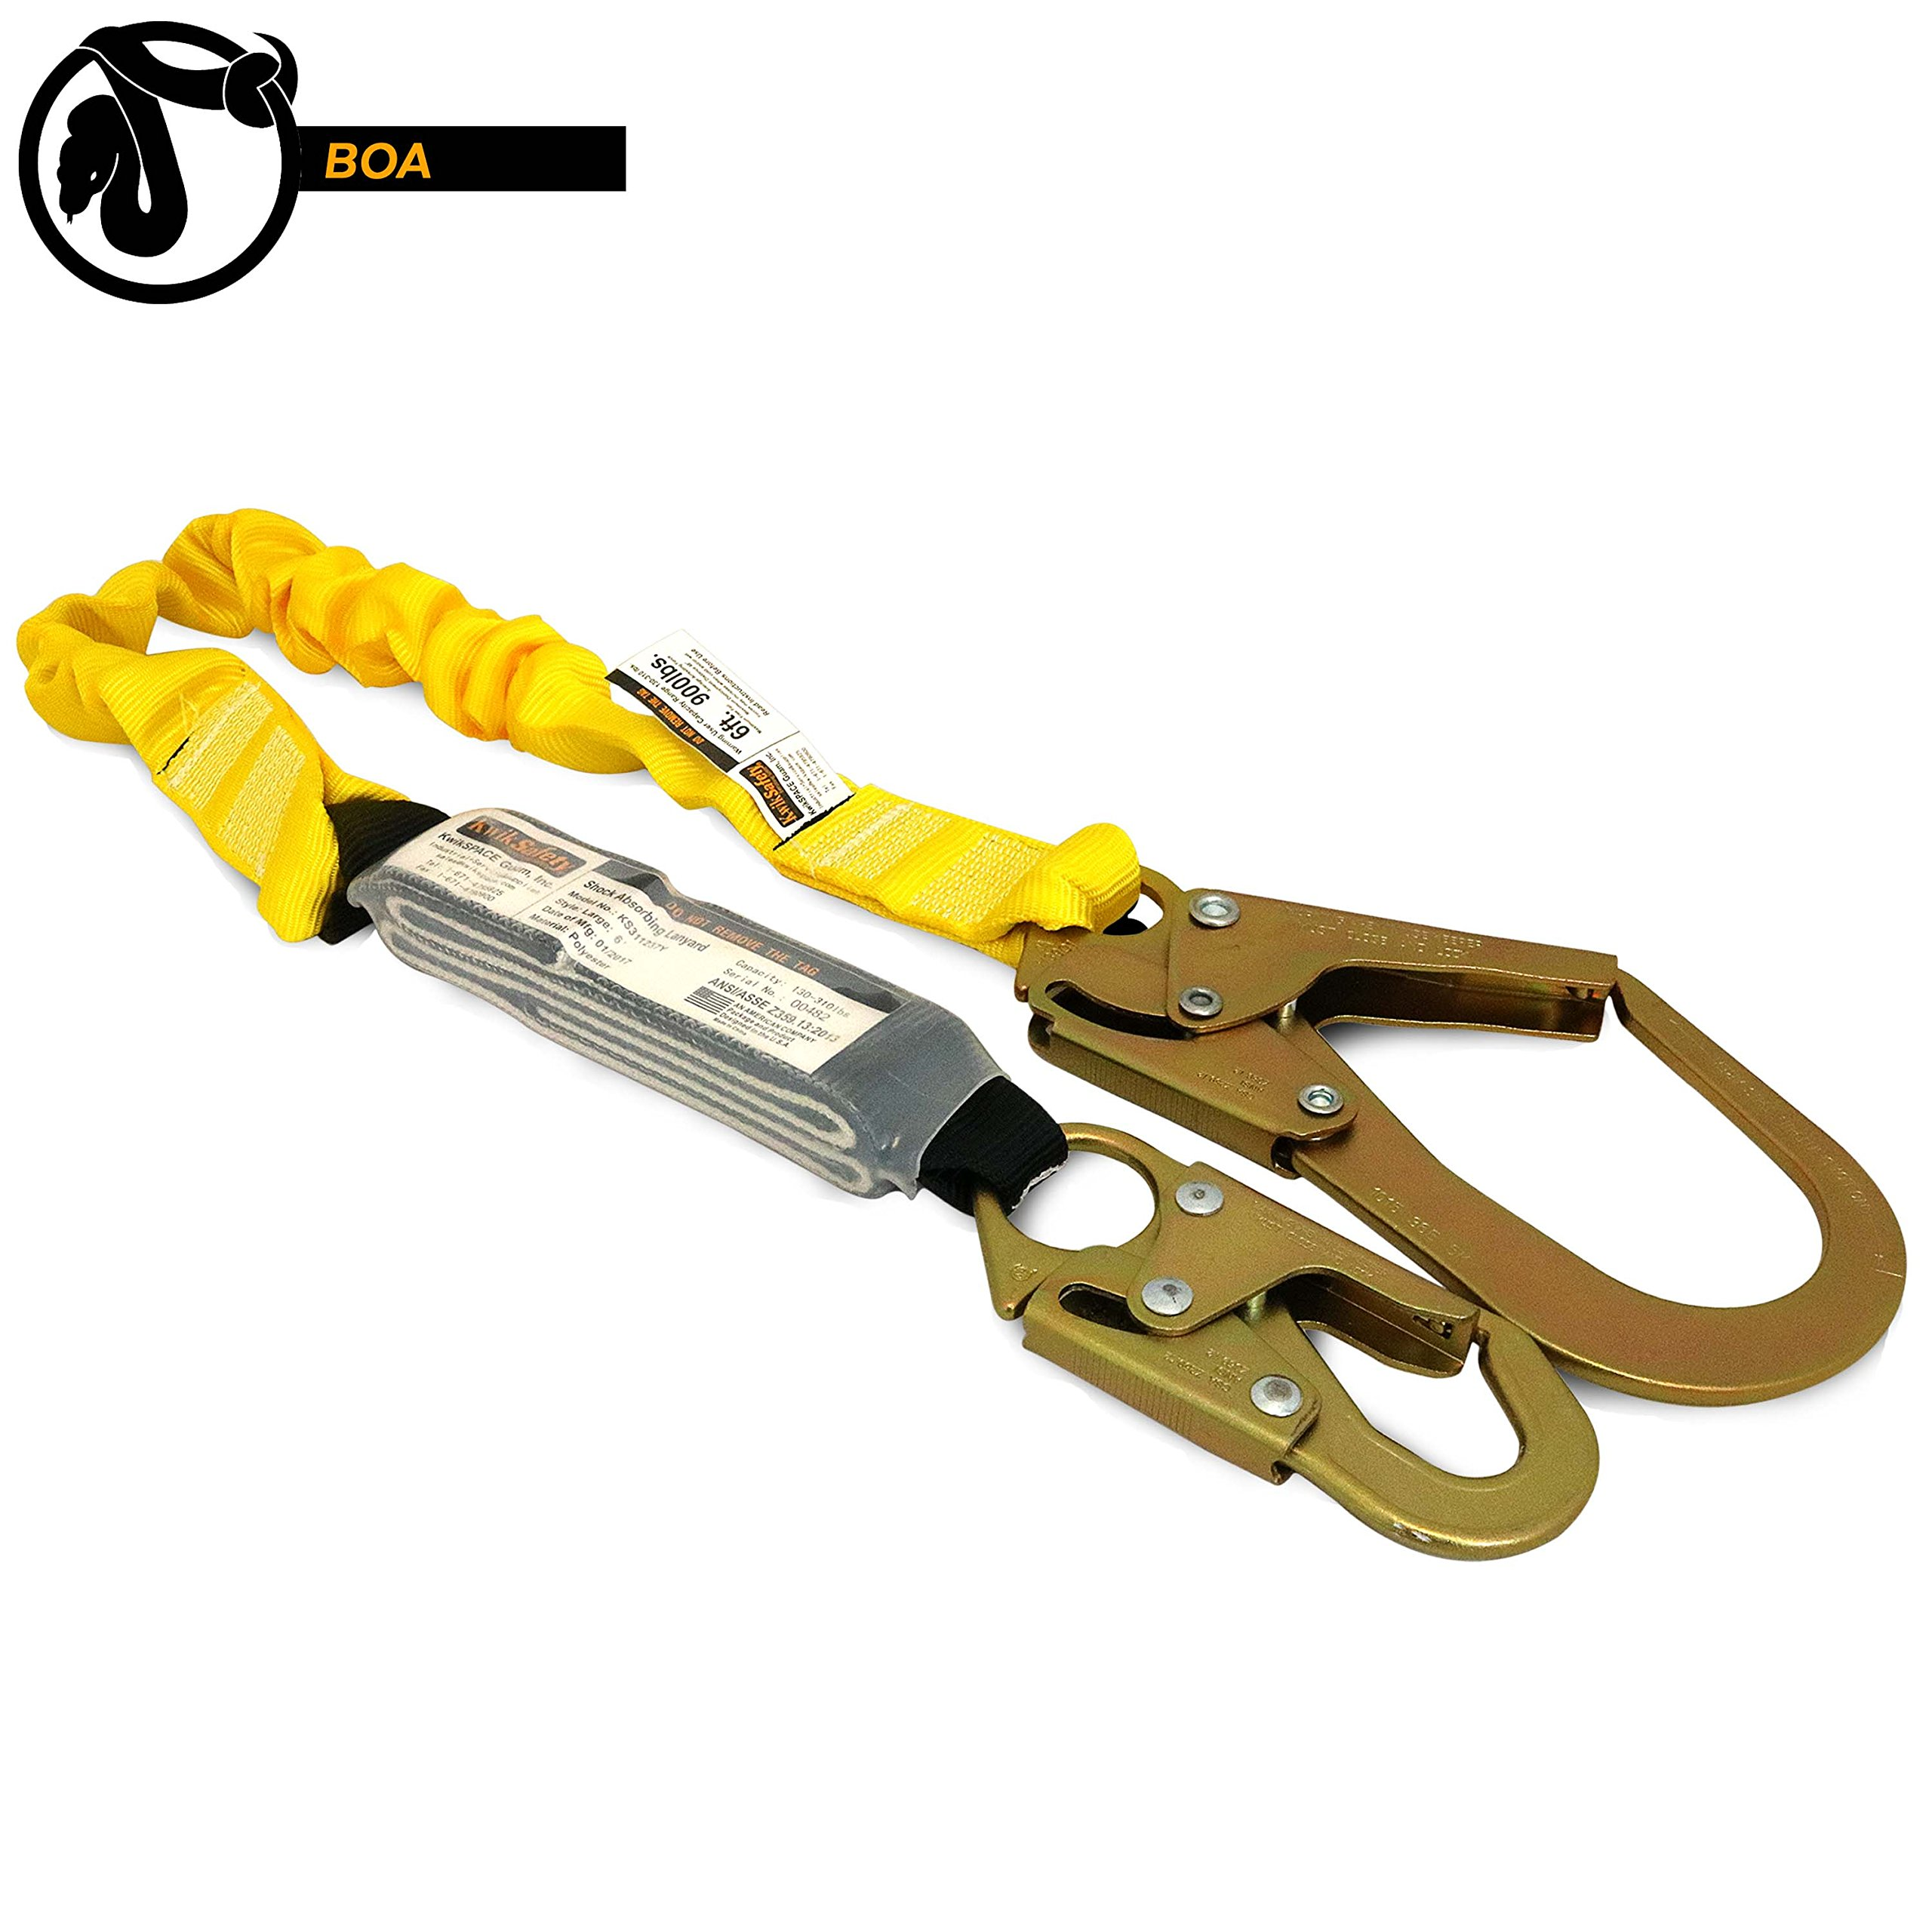 KwikSafety BOA | Single Leg 6ft Tubular Stretch Safety Lanyard | OSHA Approved ANSI Compliant Fall Protection | EXTERNAL Shock Absorber | Construction Arborist Roofing | Snap & Rebar Hook Connectors